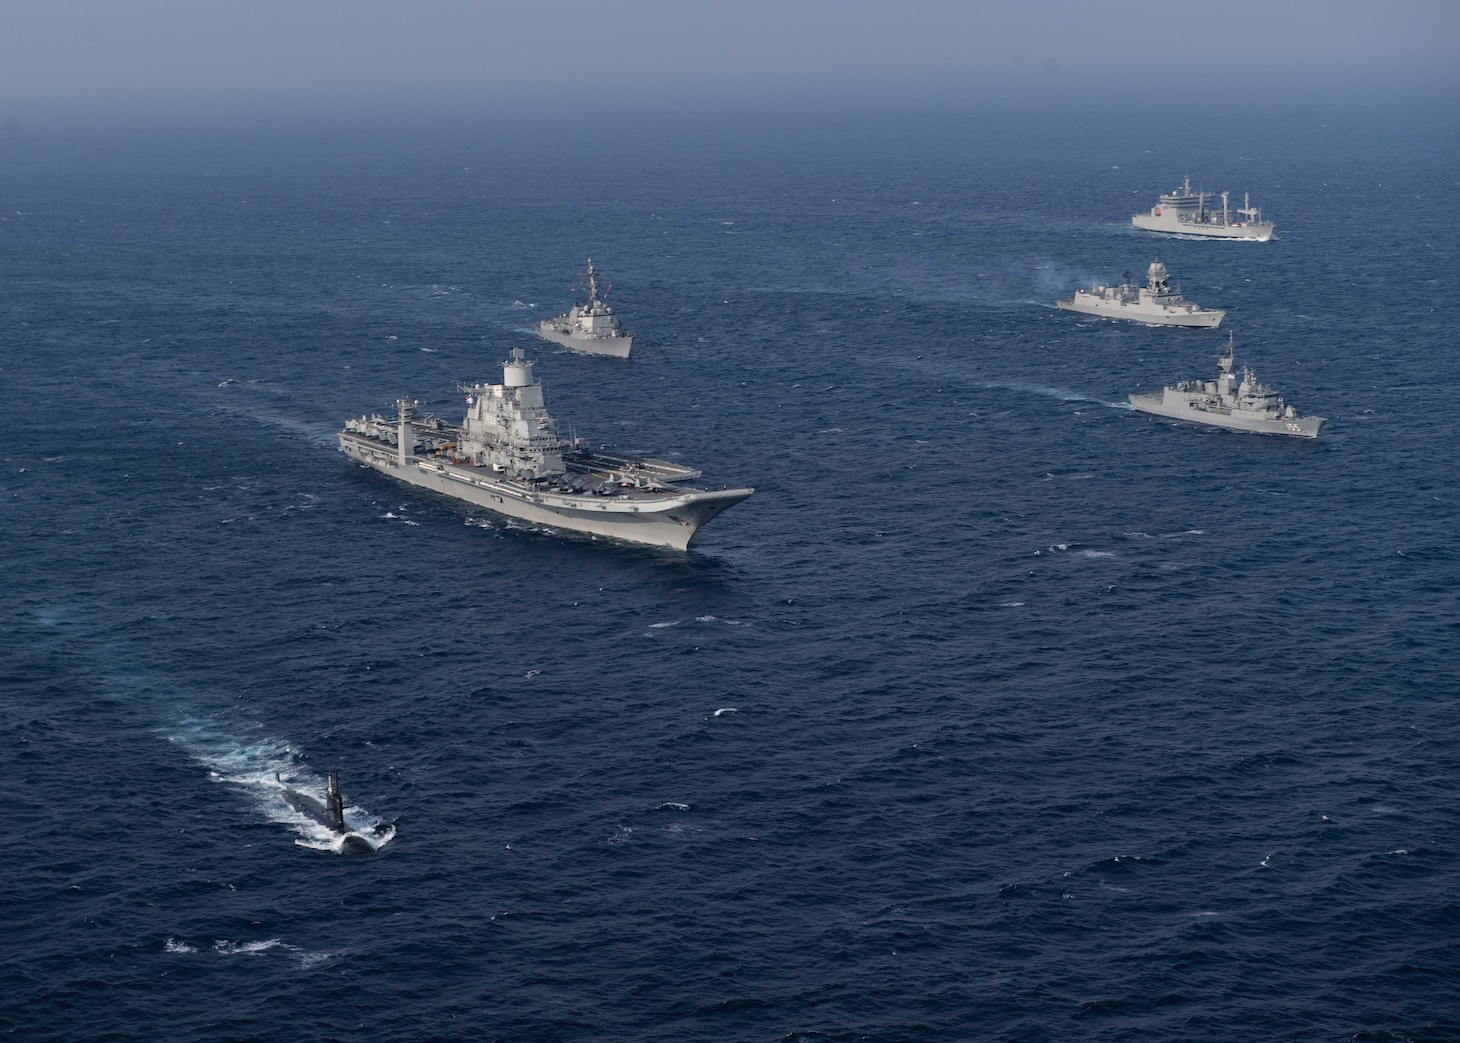 Ships from the Royal Australian navy, Indian navy, Japan Maritime Self-Defense Force, and the U.S. Navy participate in Malabar 2020.